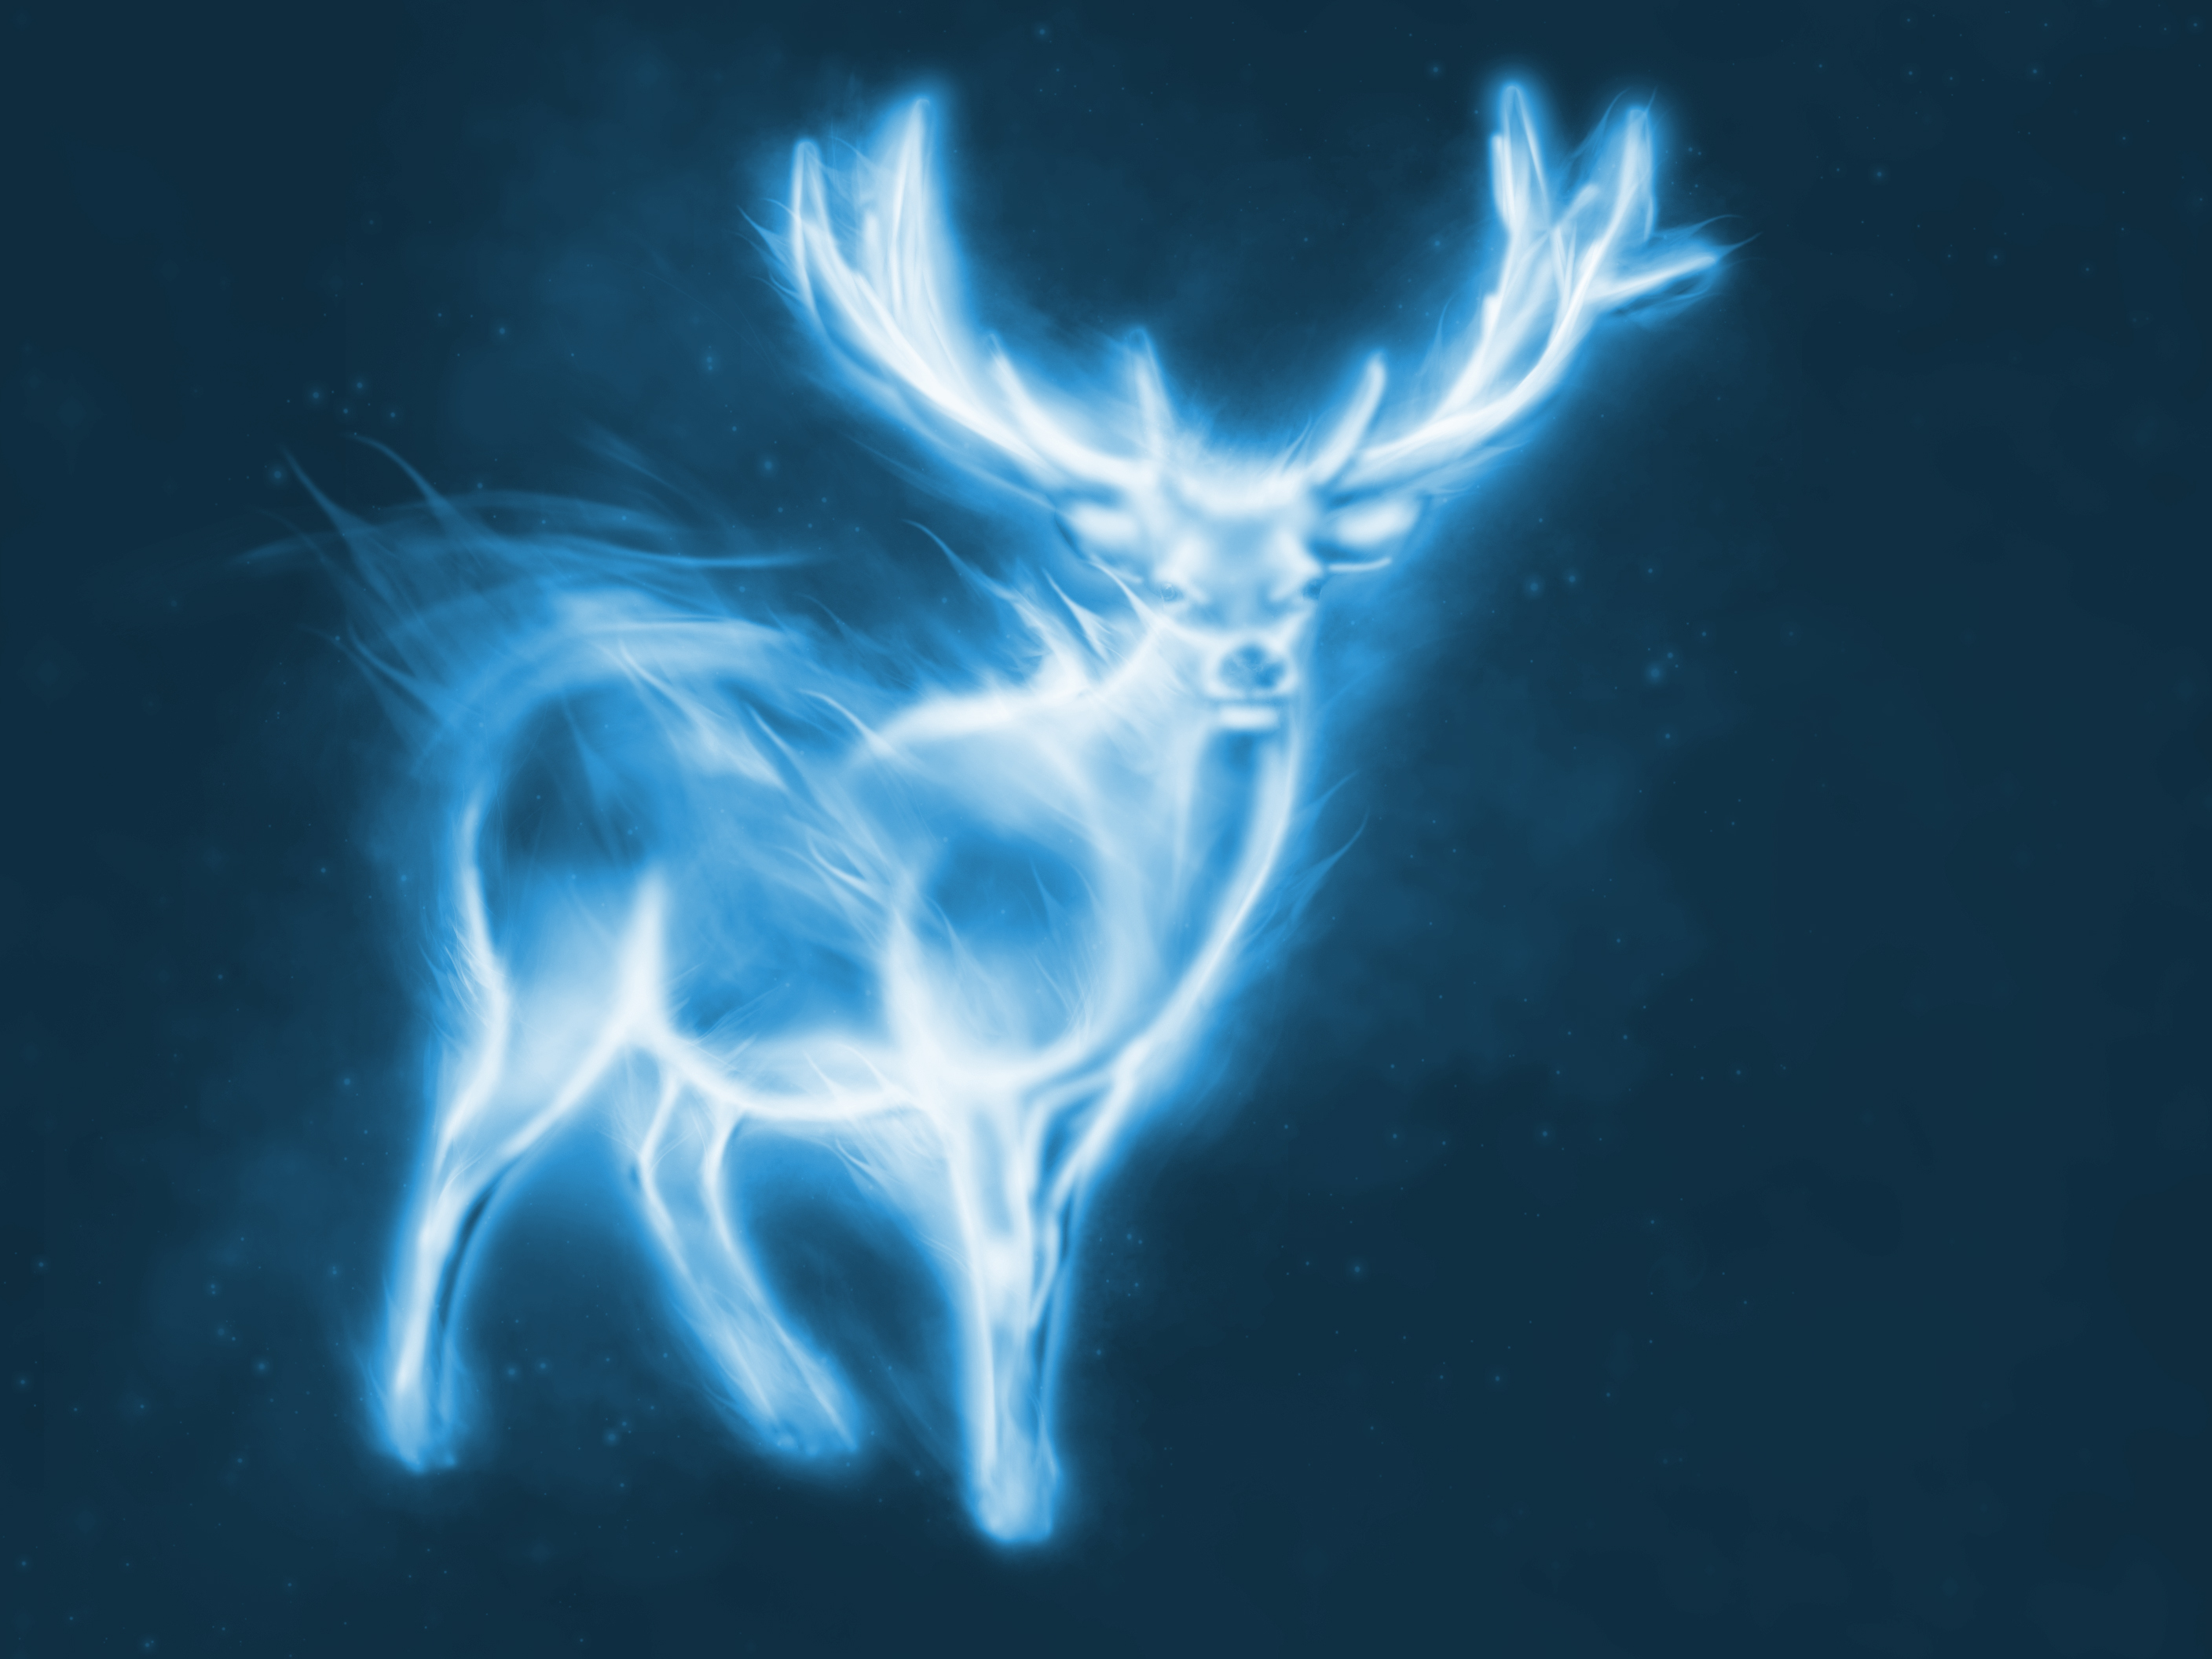 What is Your Patronus Charm